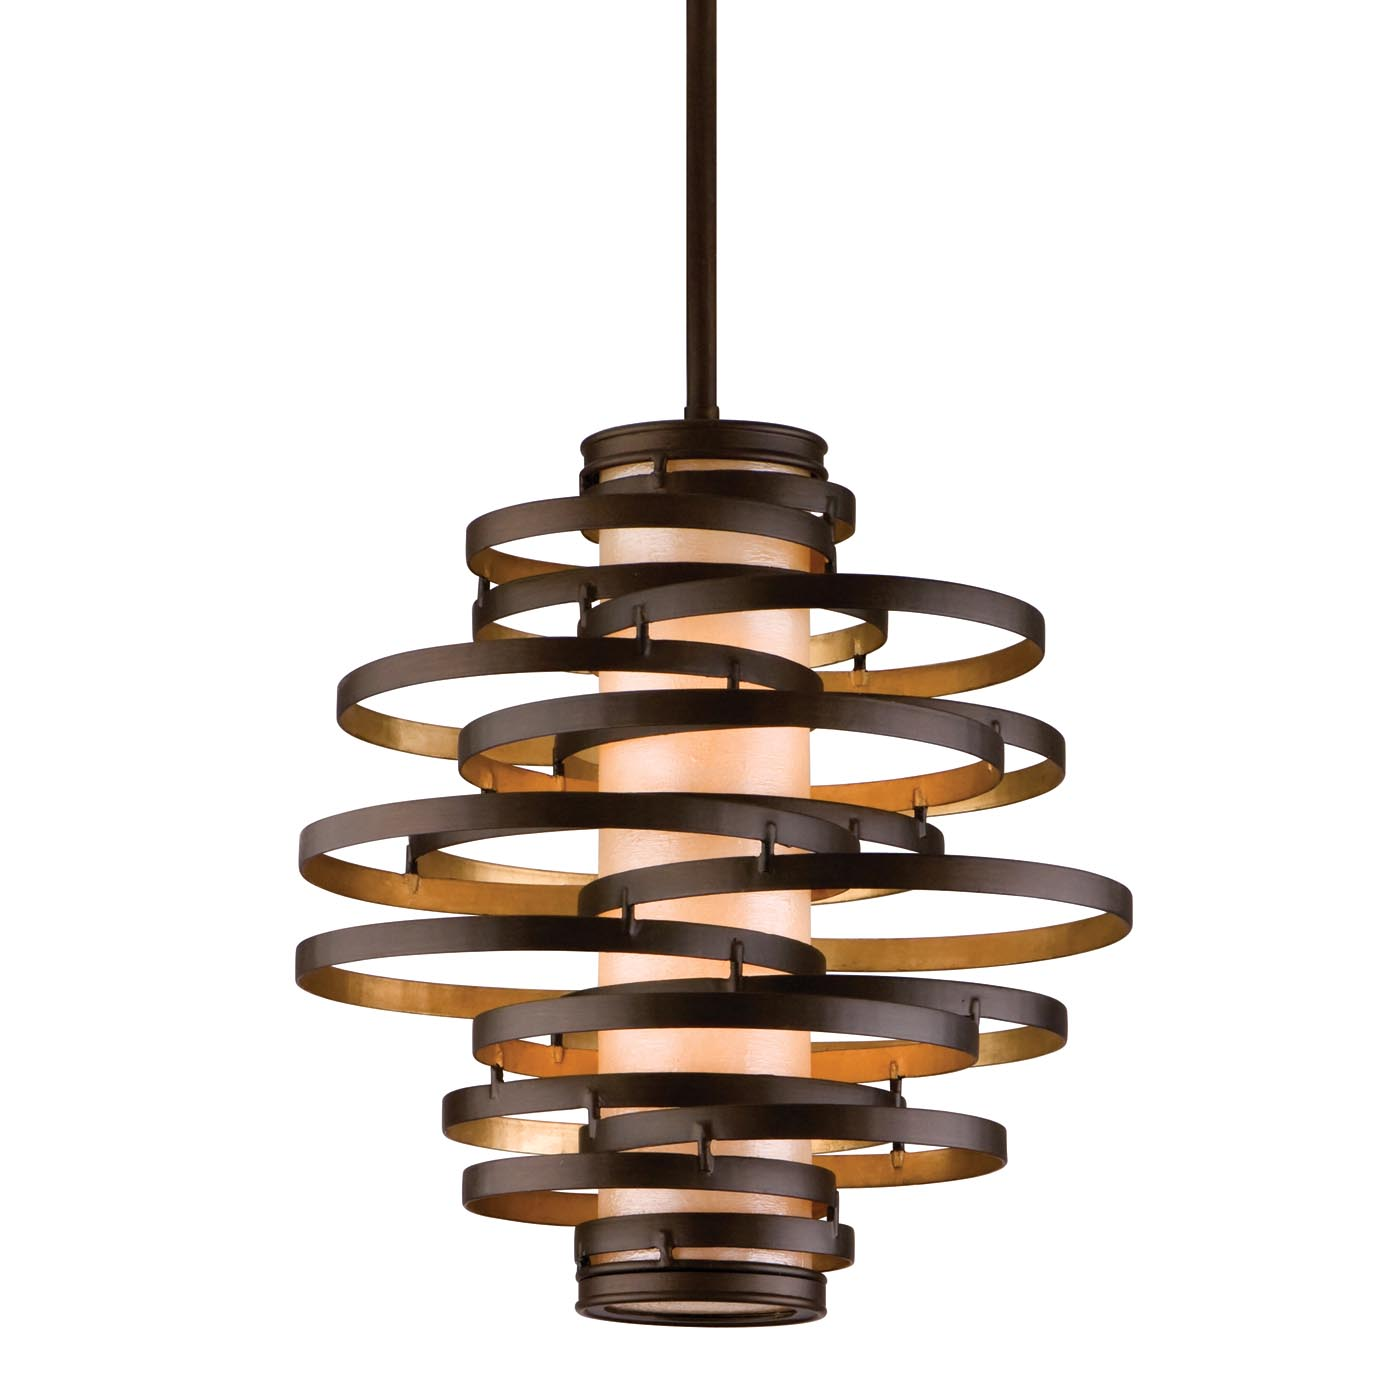 Designer lighting fixtures for home homesfeed for Cool modern light fixtures